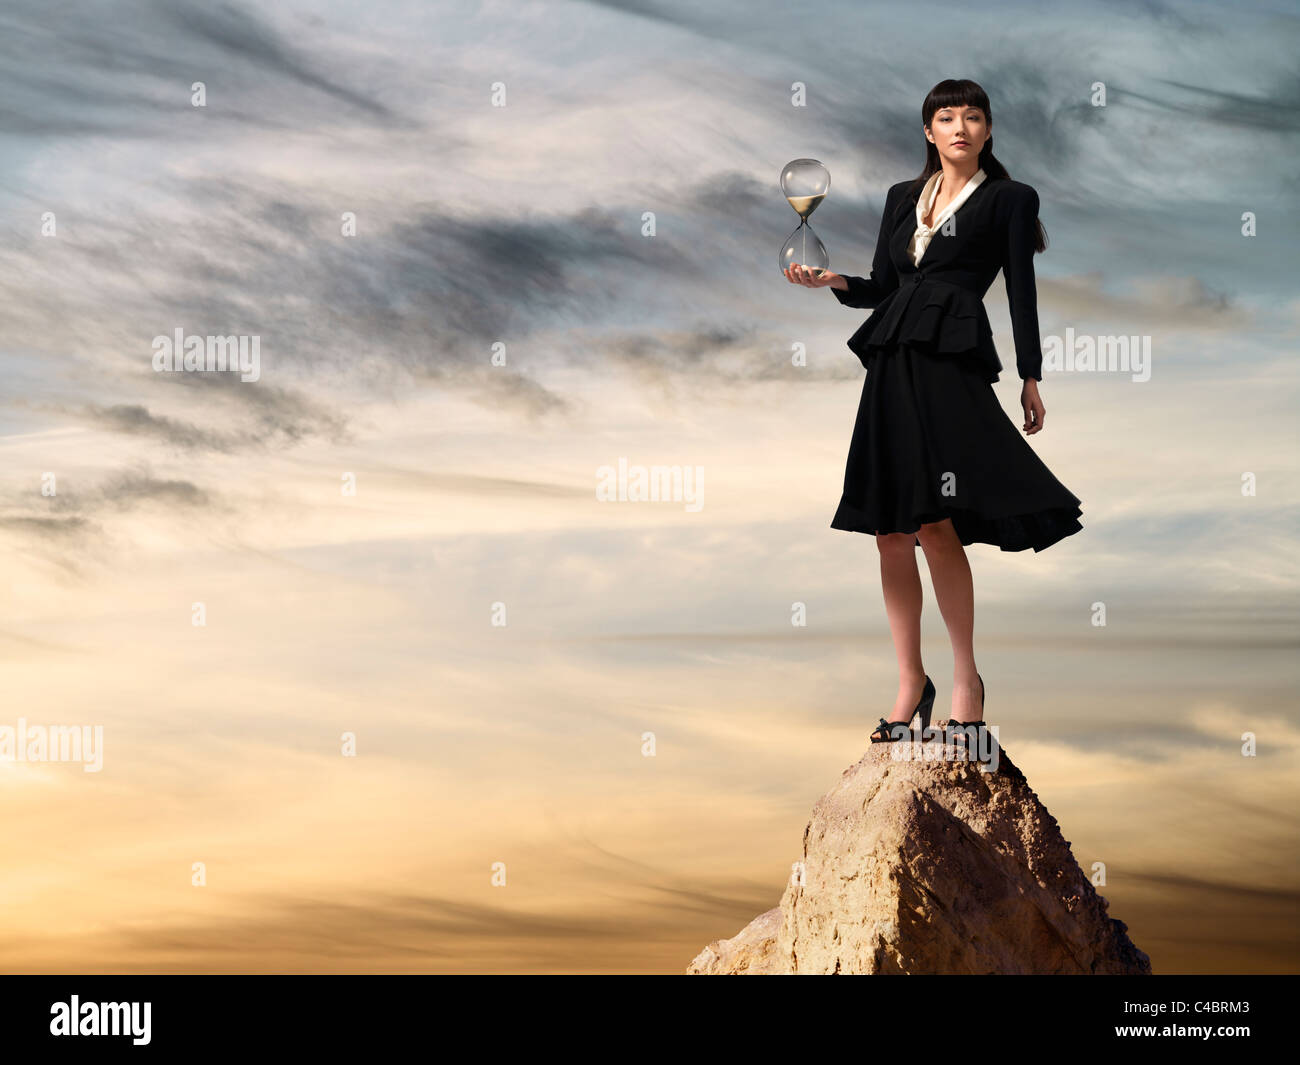 Asian business woman holding hourglass standing on mountaintop at sunset - Stock Image